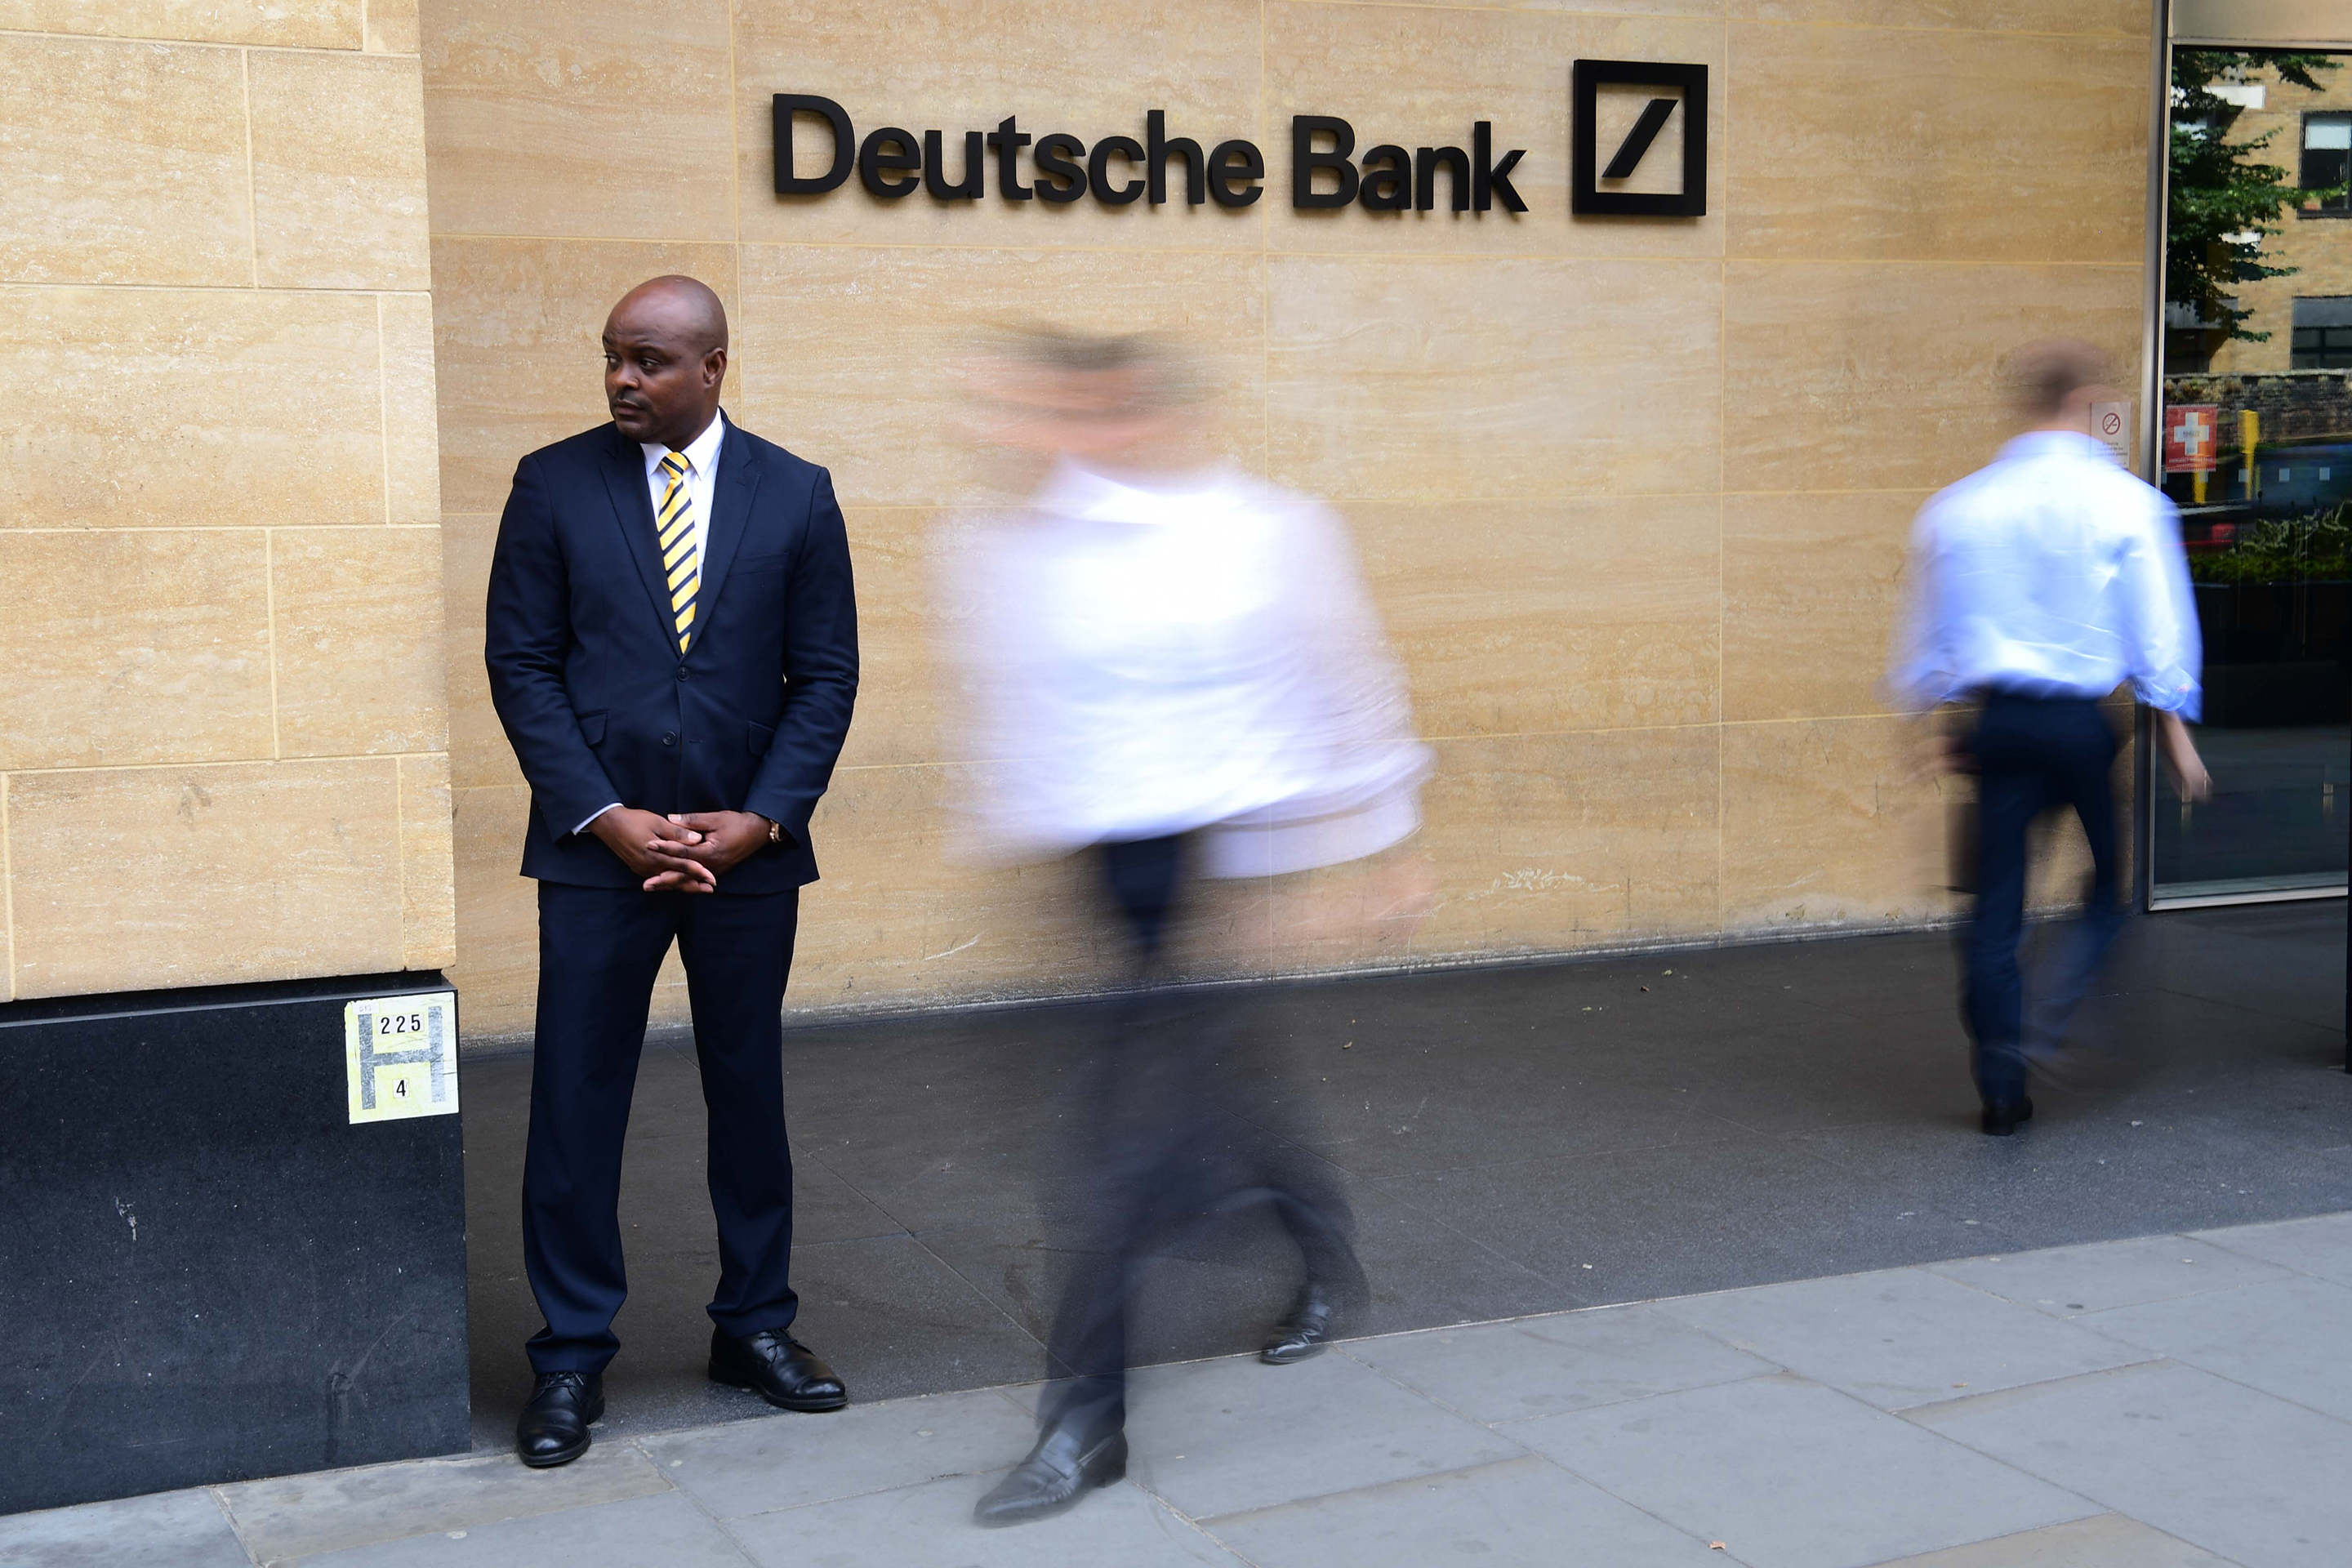 While Heads Rolled at Deutsche Bank, These Tailors Were Sizing Up Managers for New Suits